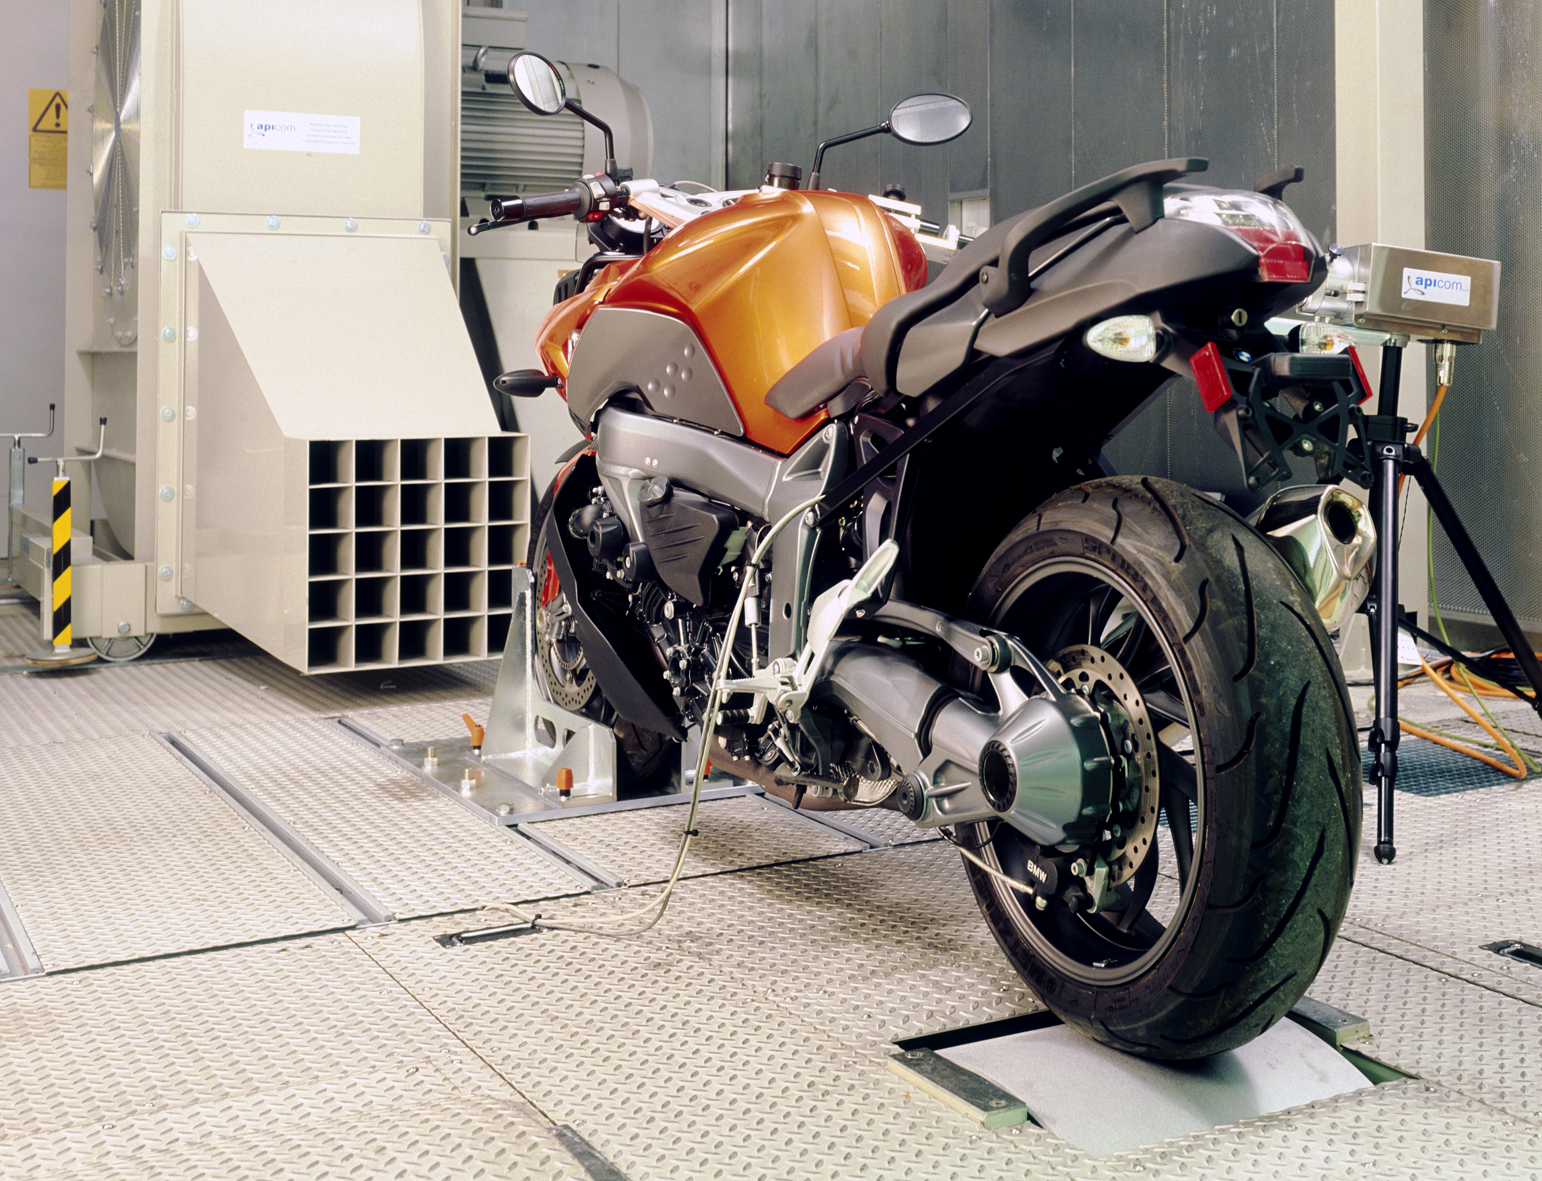 Ricardo Invests In New Motorcycle Development Facility